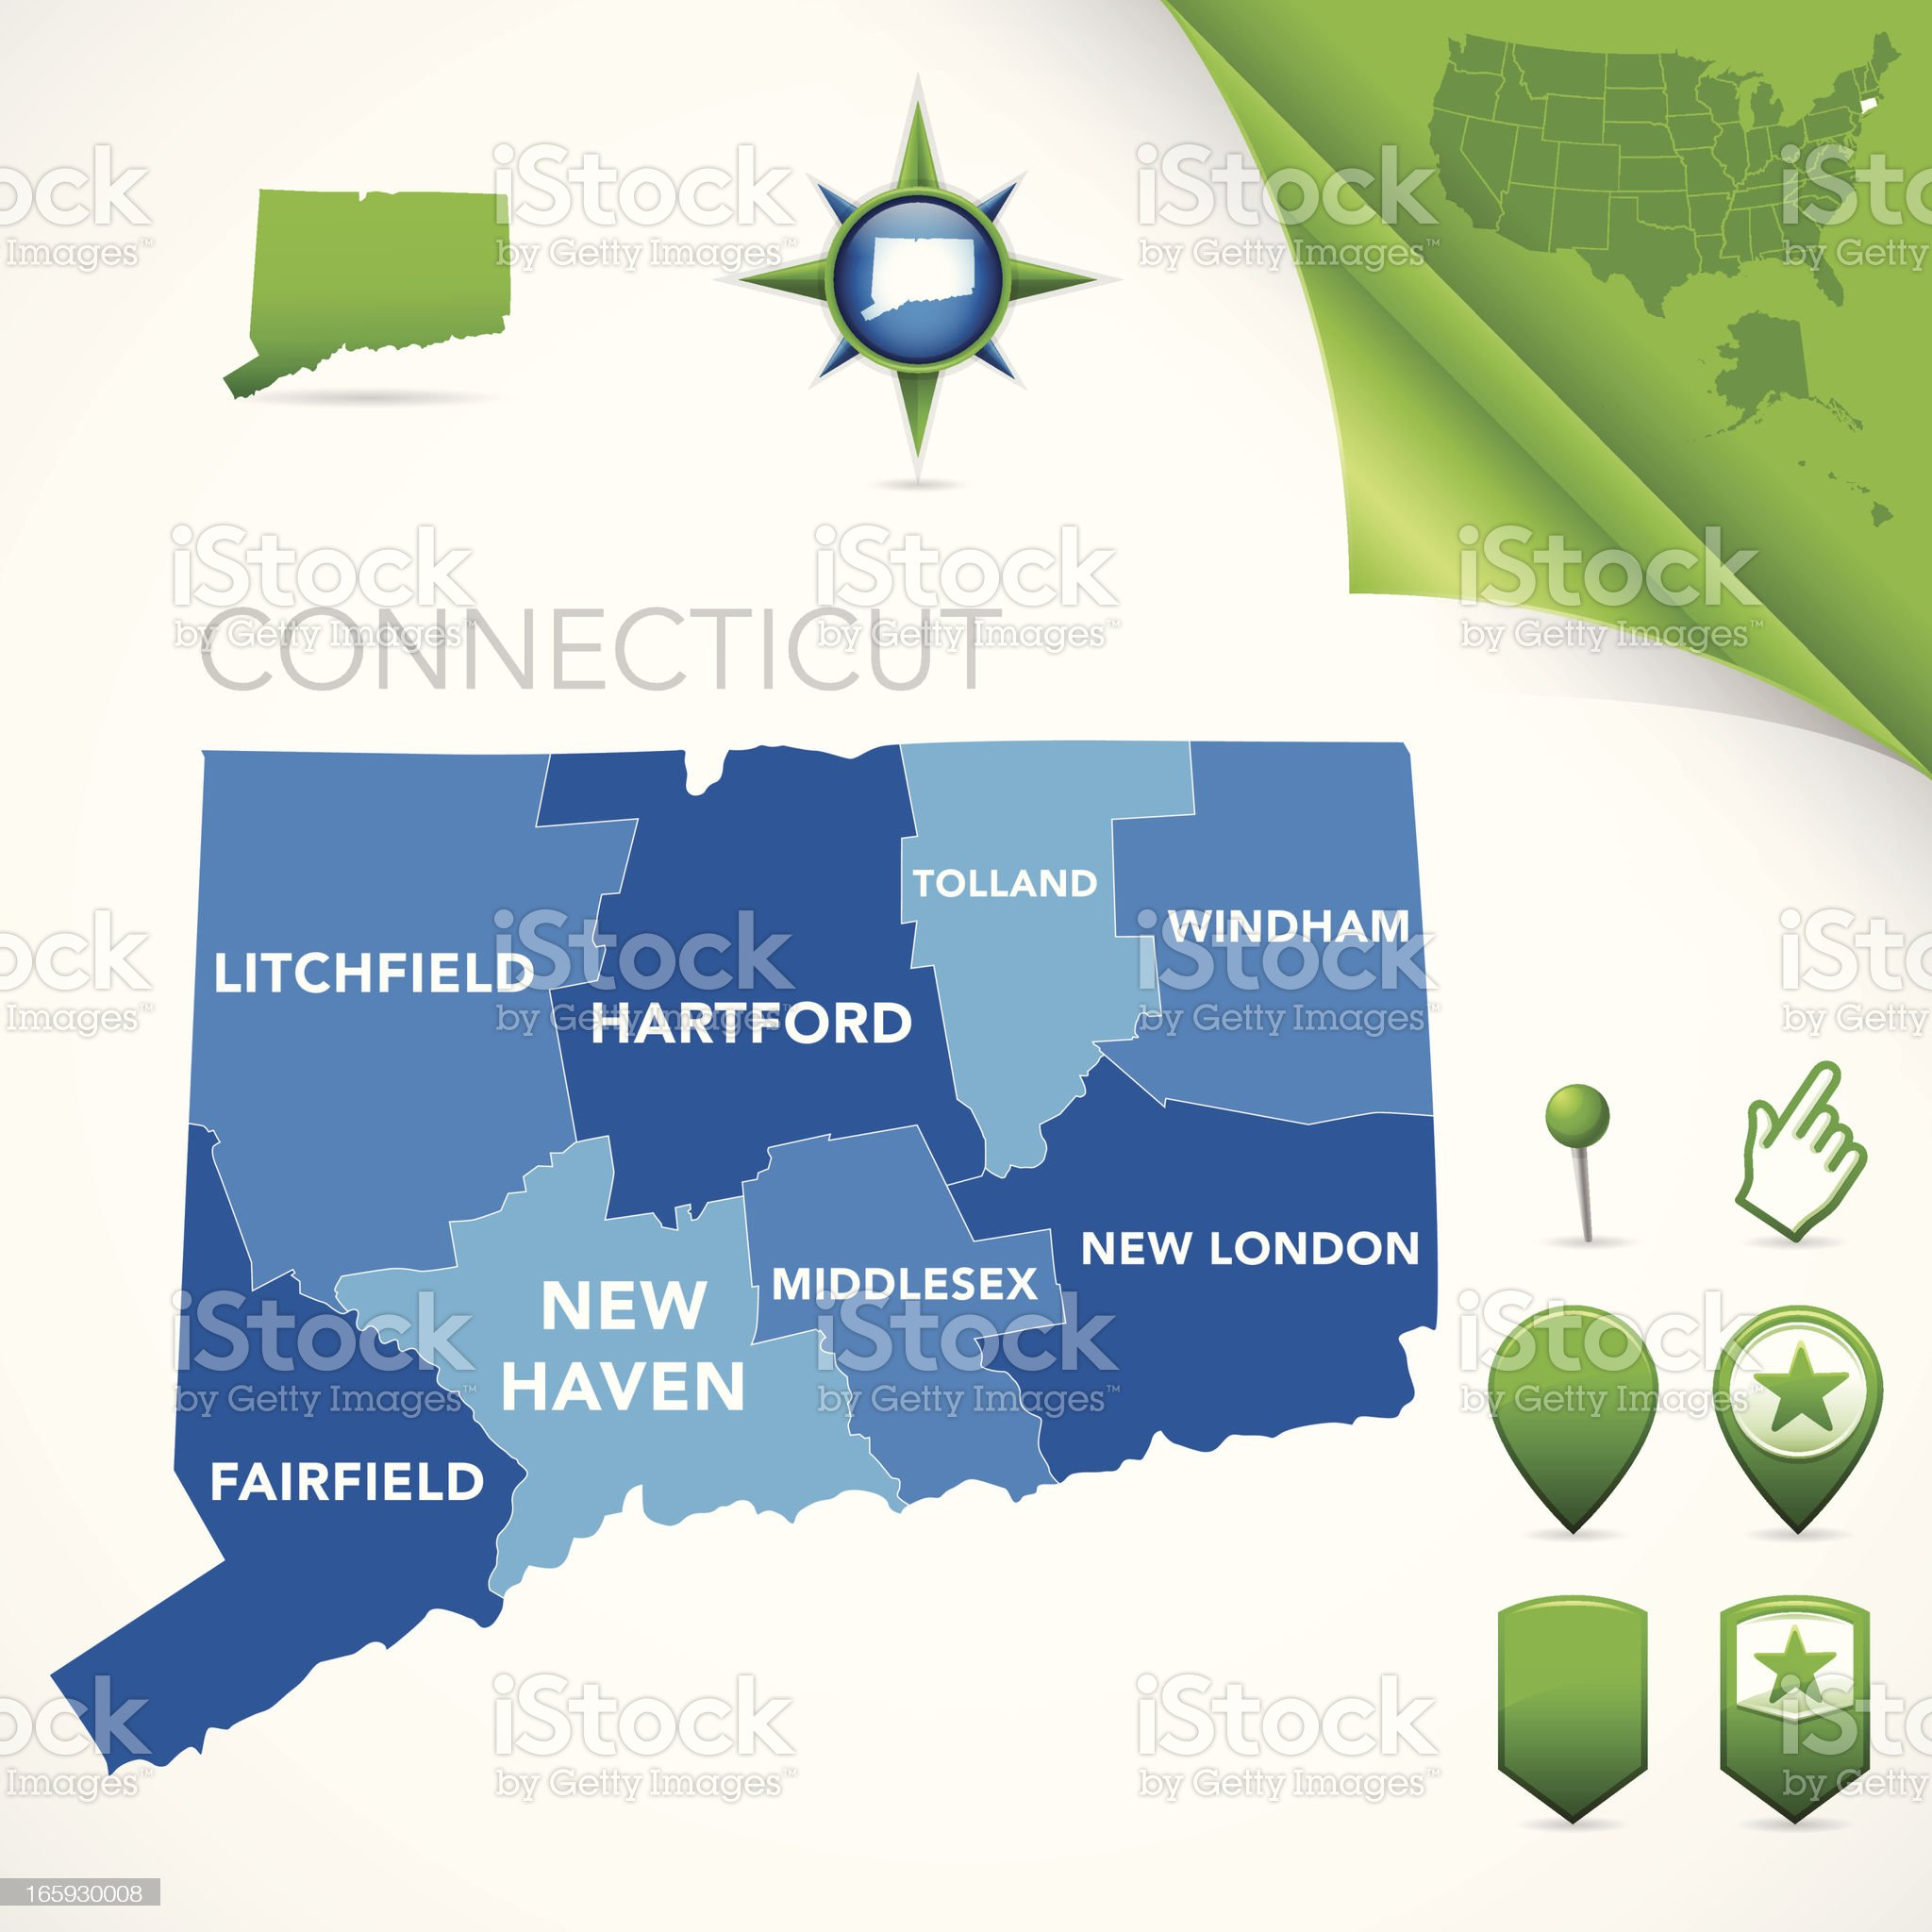 Connecticut County Map royalty-free stock vector art